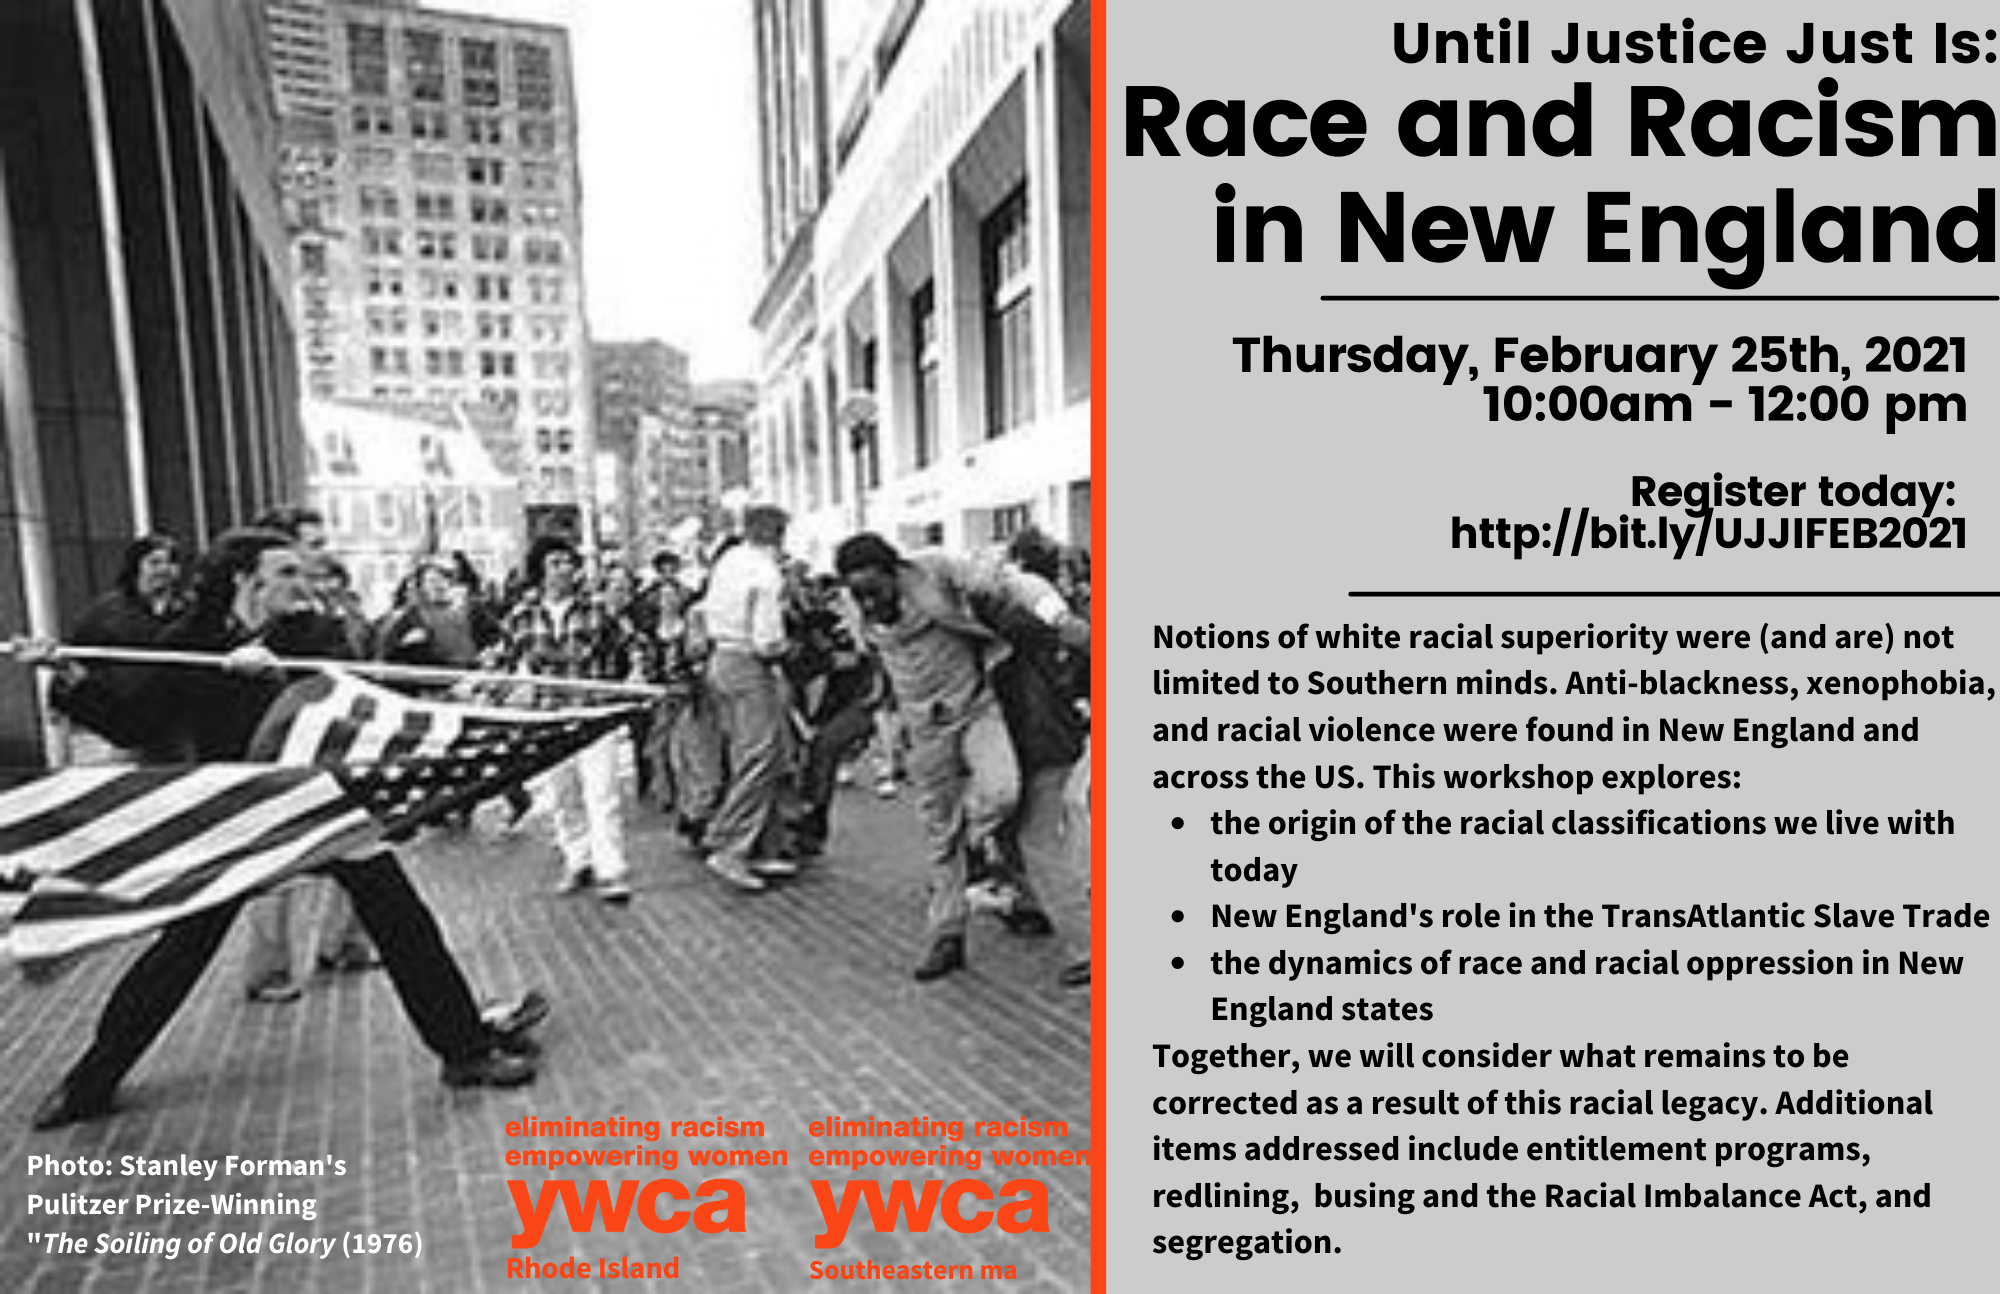 Race and Racism in New England